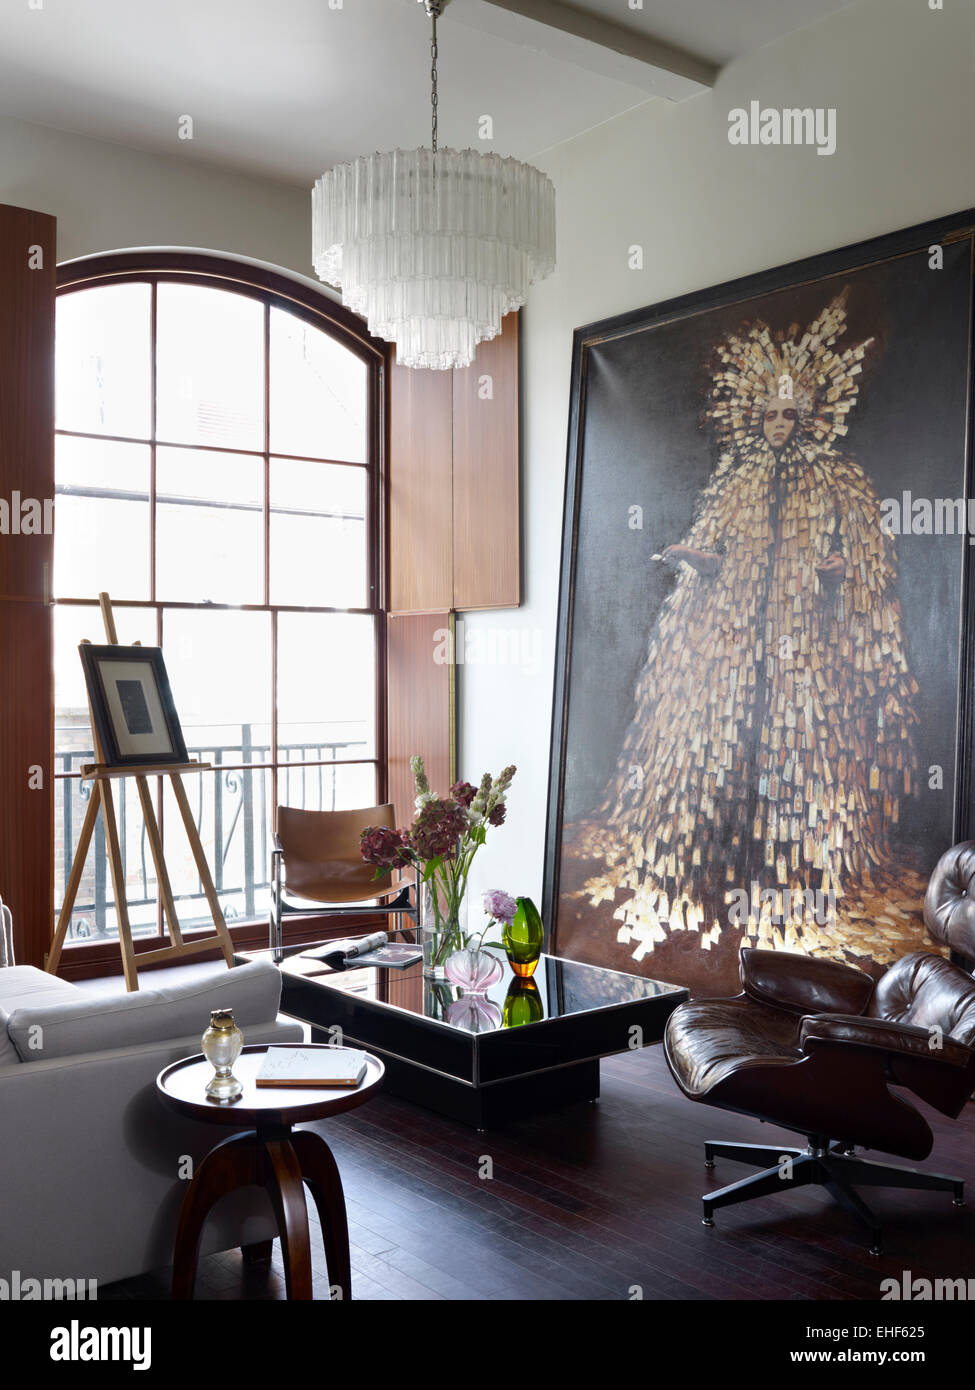 Large artwork in lounge with leather armchair chandelier large artwork in lounge with leather armchair chandelier shutters and wooden floor in kensington court mews home uk aloadofball Choice Image